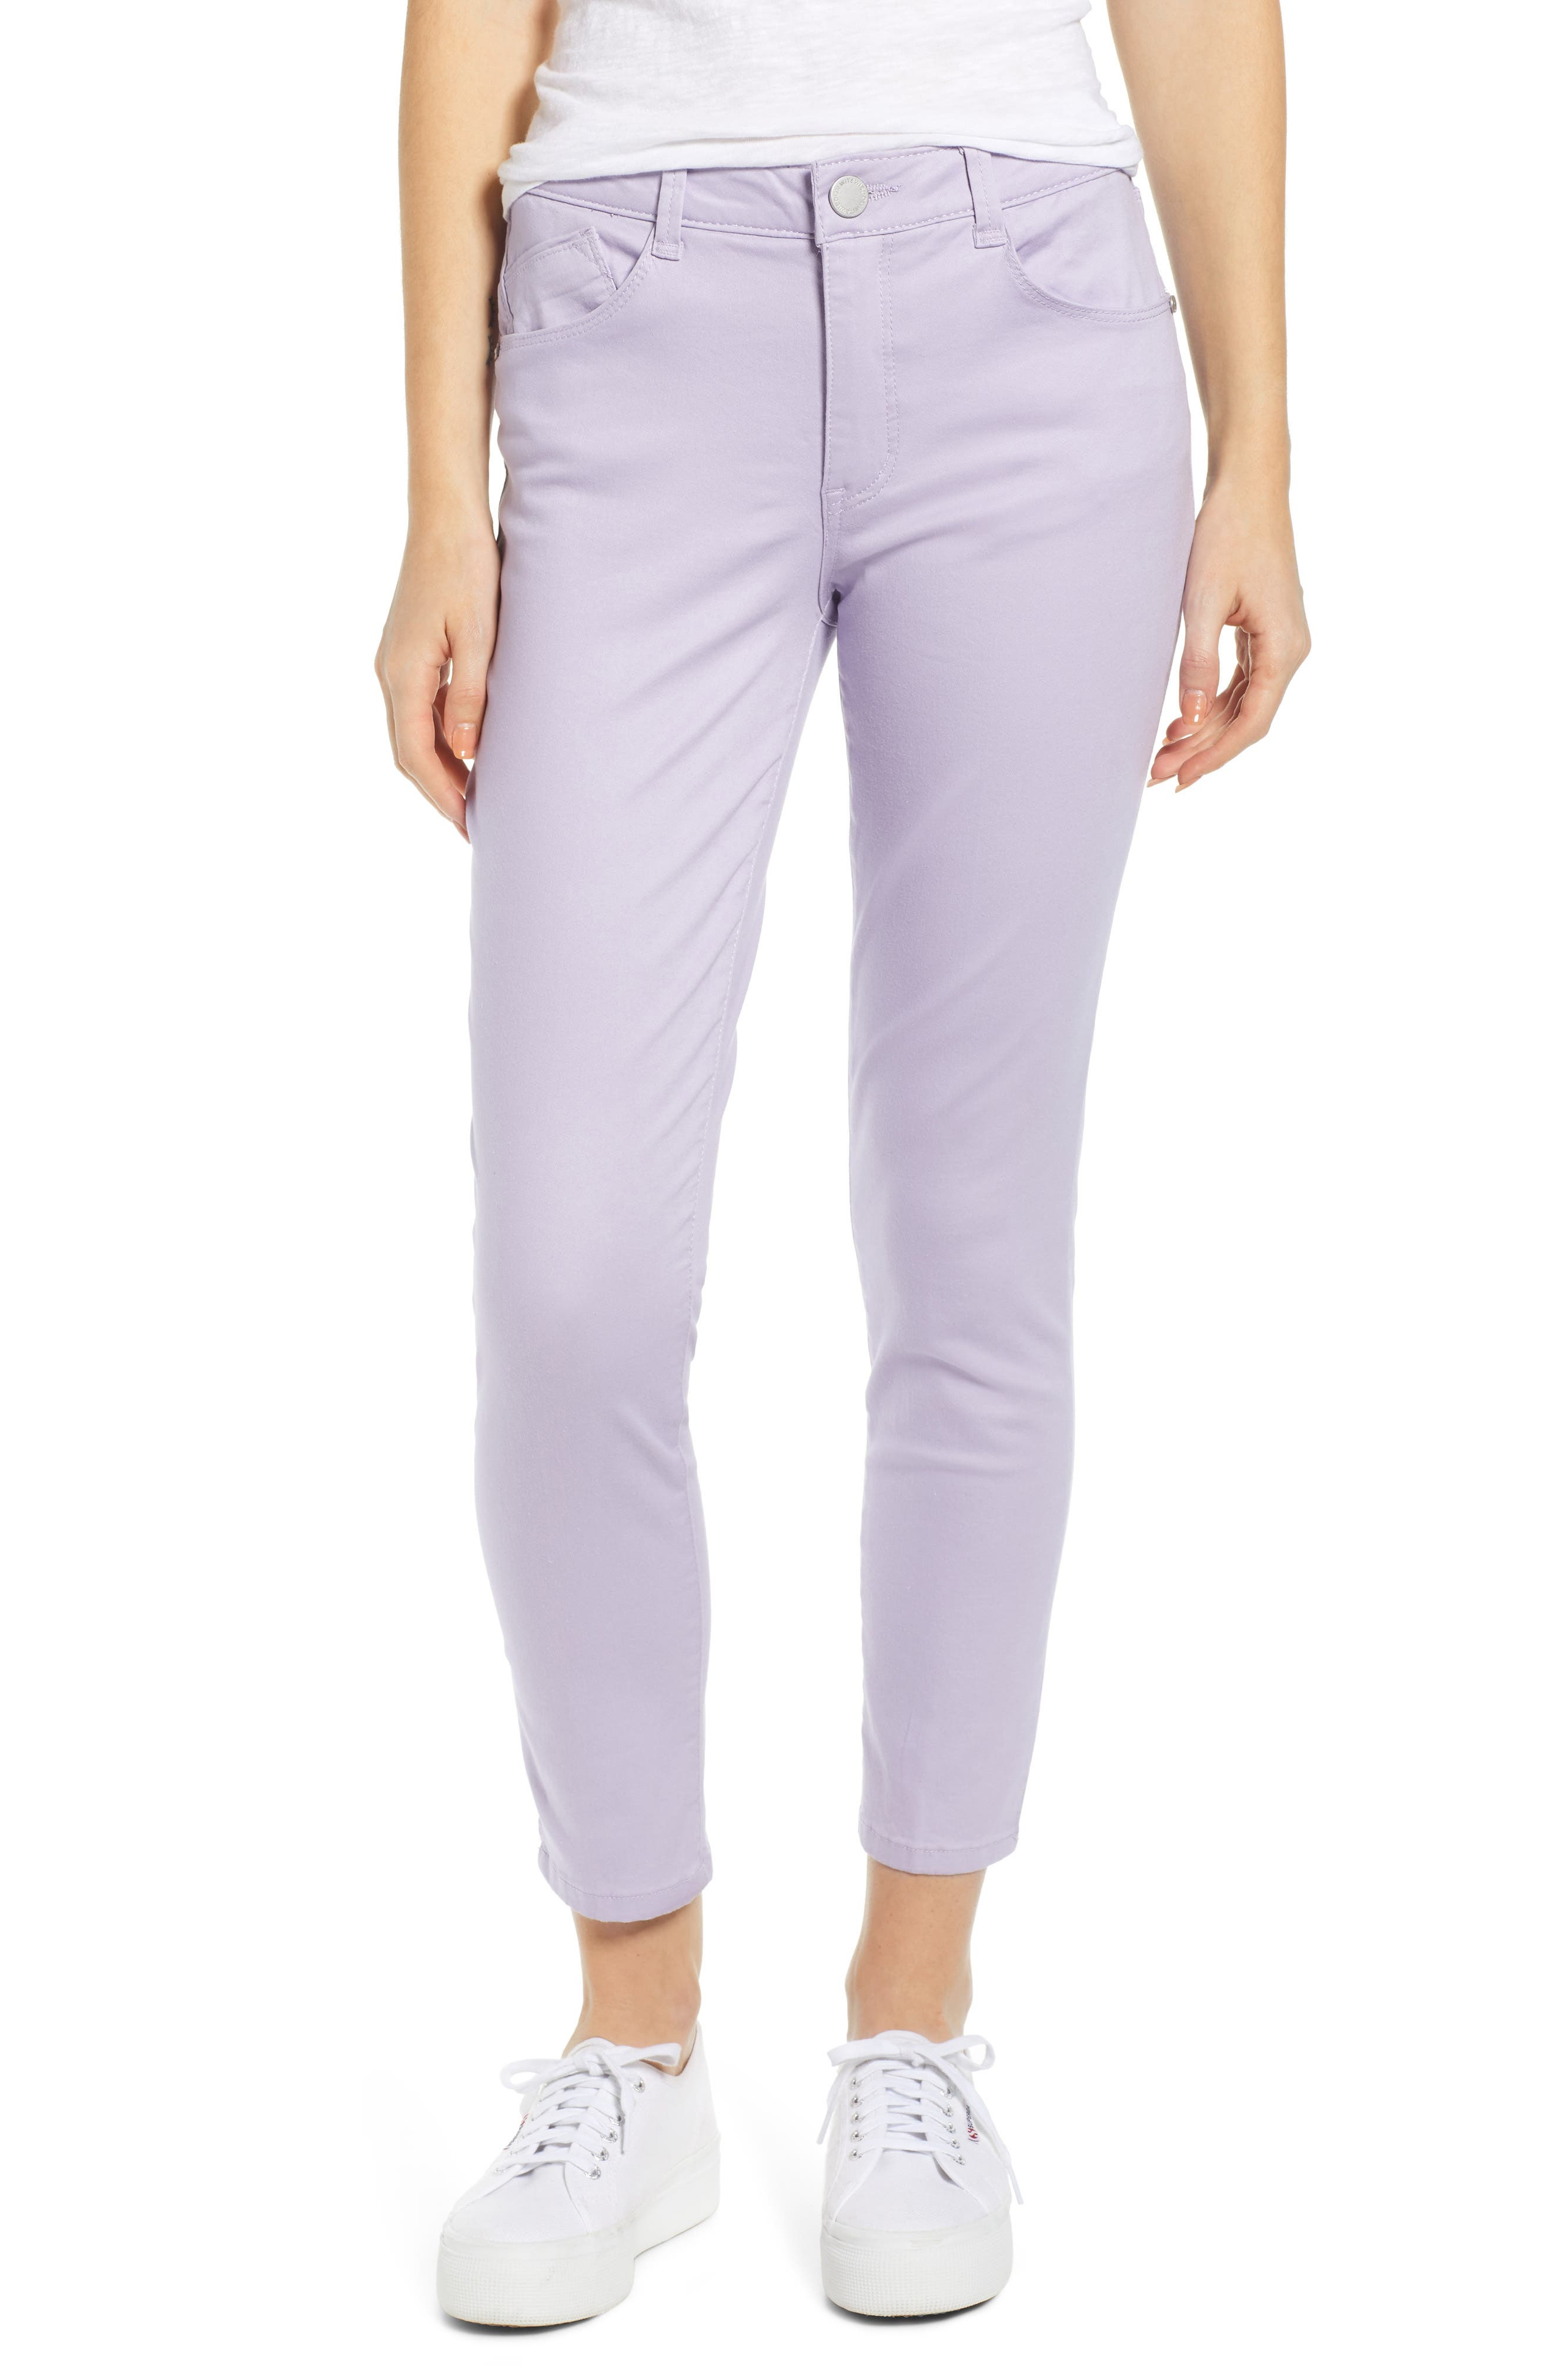 Stretchy, ankle-grazing skinny pants are designed for a slimming fit with Ab-solution technology to shape, smooth and lift in all the right places. Style Name: Wit & Wisdom Ab-Solution High Waist Ankle Skinny Pants (Regular & Petite) (Nordstrom Exclusive). Style Number: 5732642 7. Available in stores.